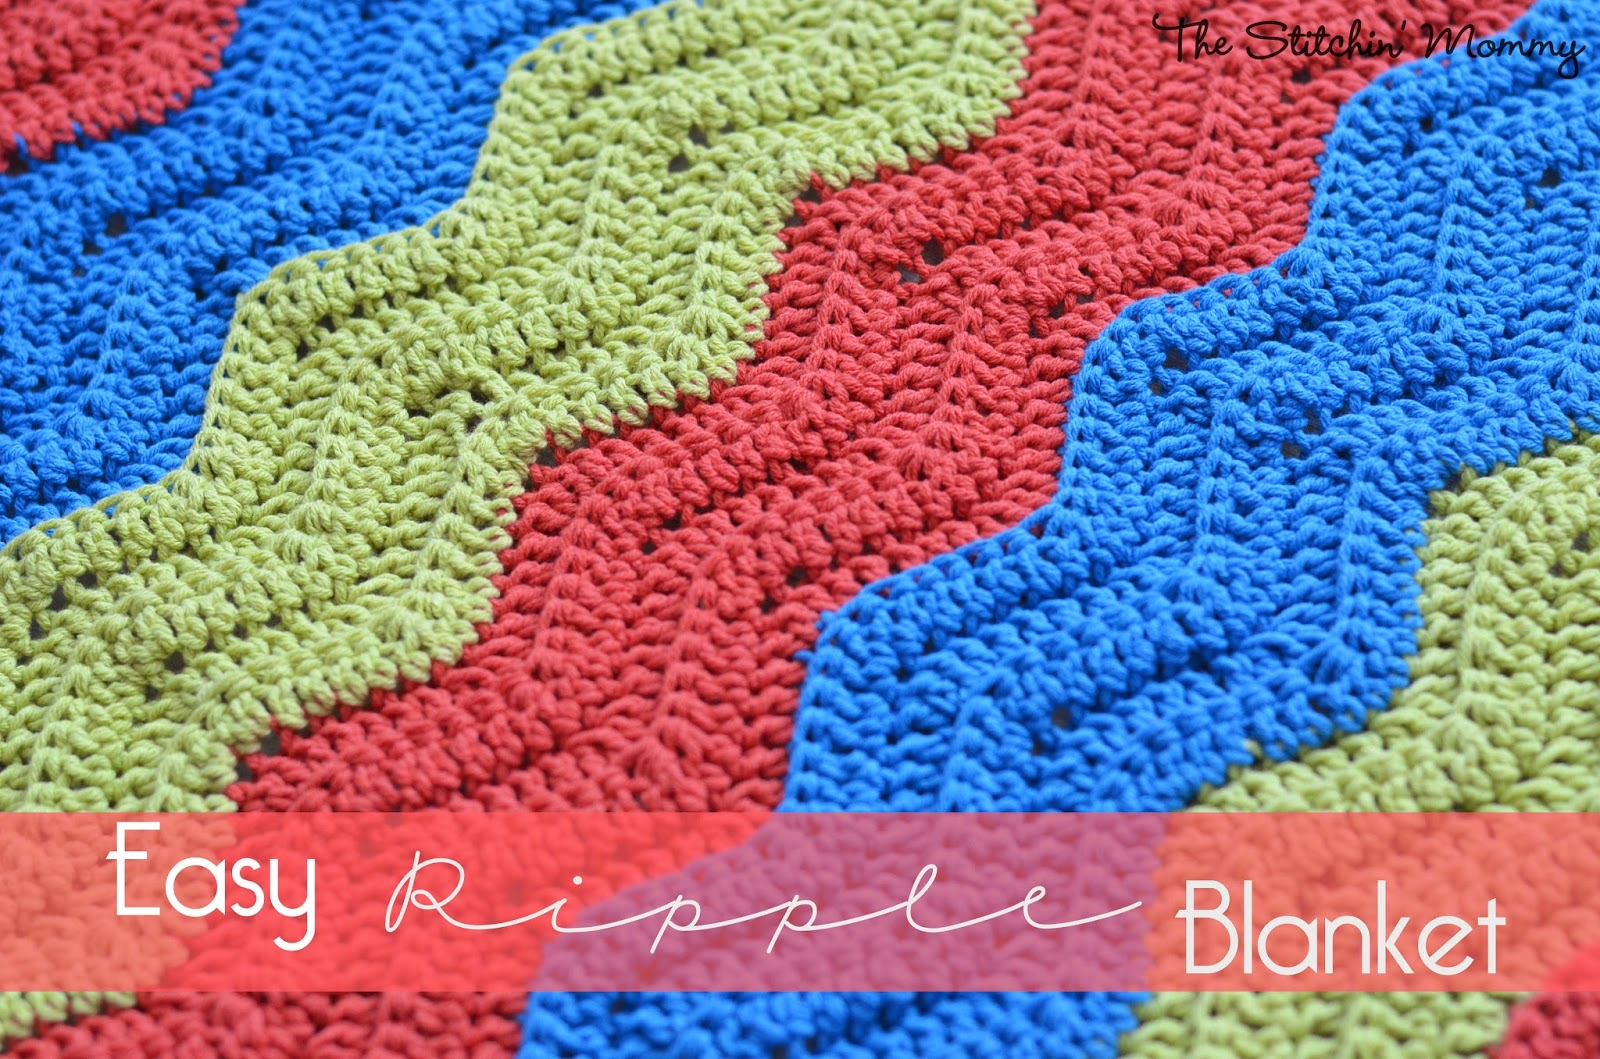 Crochet Patterns Ripple Blanket : Easy Crochet Ripple Blanket www.thestitchinmommy.com